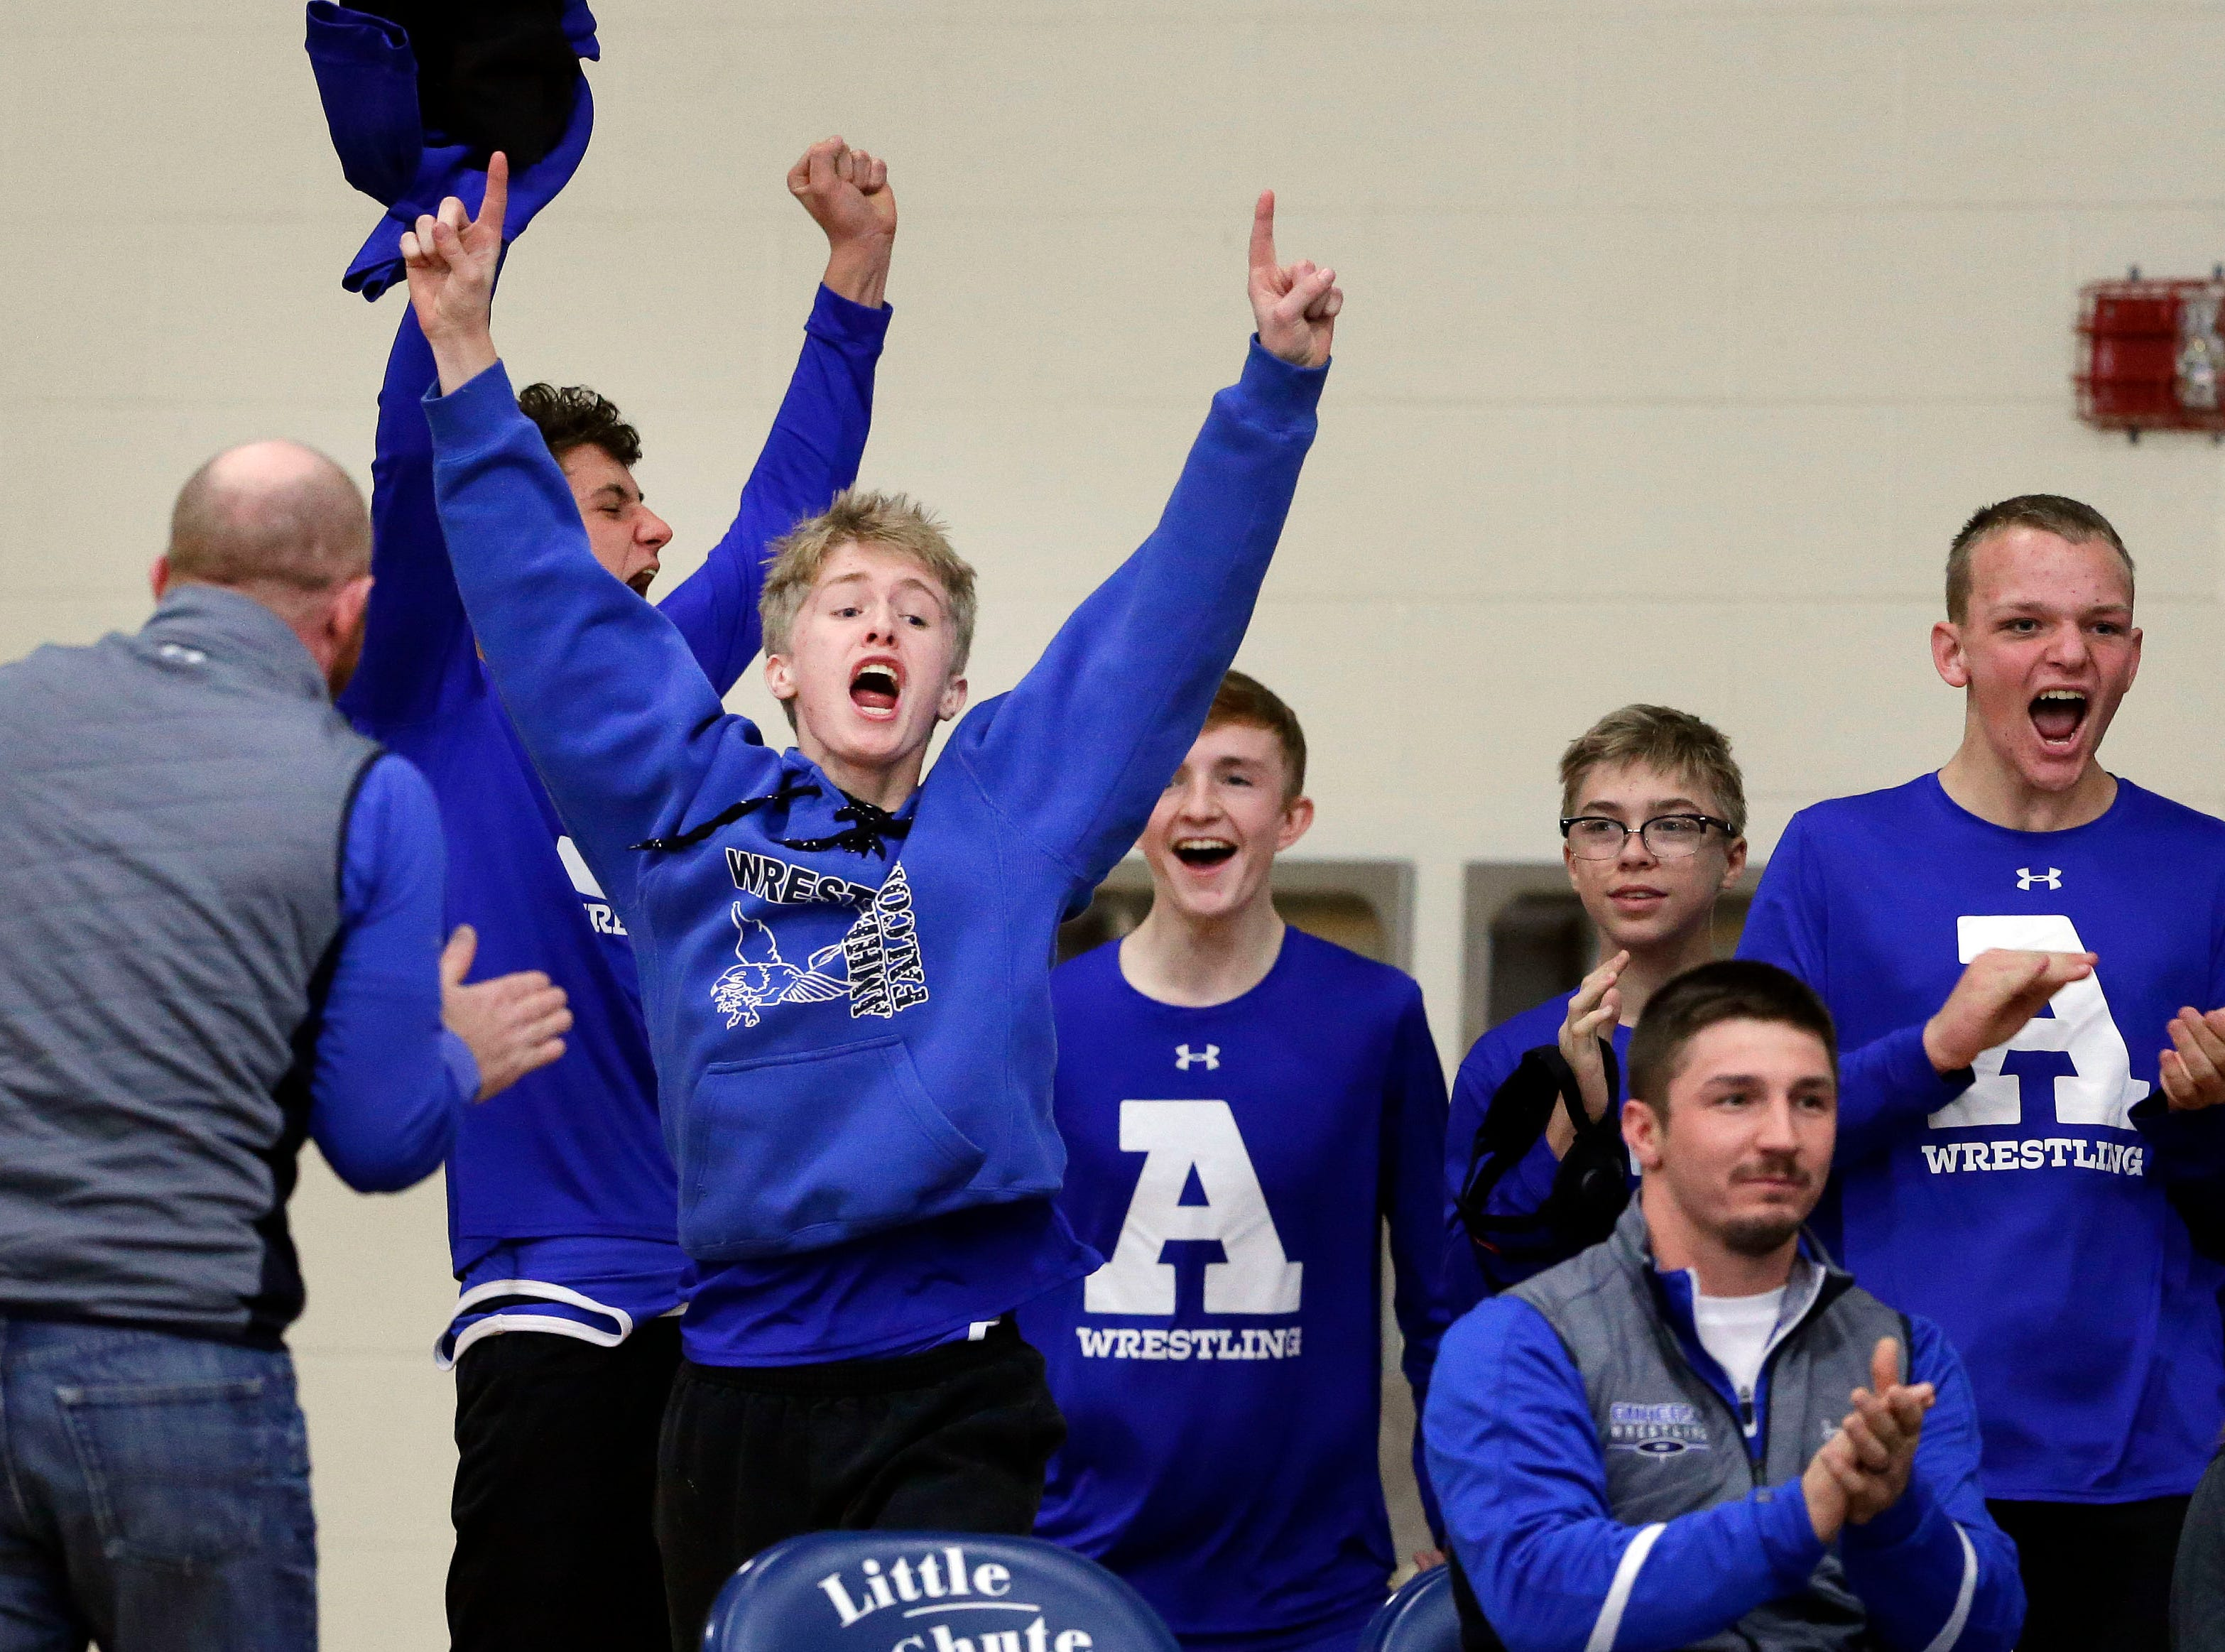 Amherst cheers for a win during the Sgt. Nick Mueller Memorial Wrestling Tournament Saturday, December 1, 2018, at Little Chute High School in Little Chute, Wis.